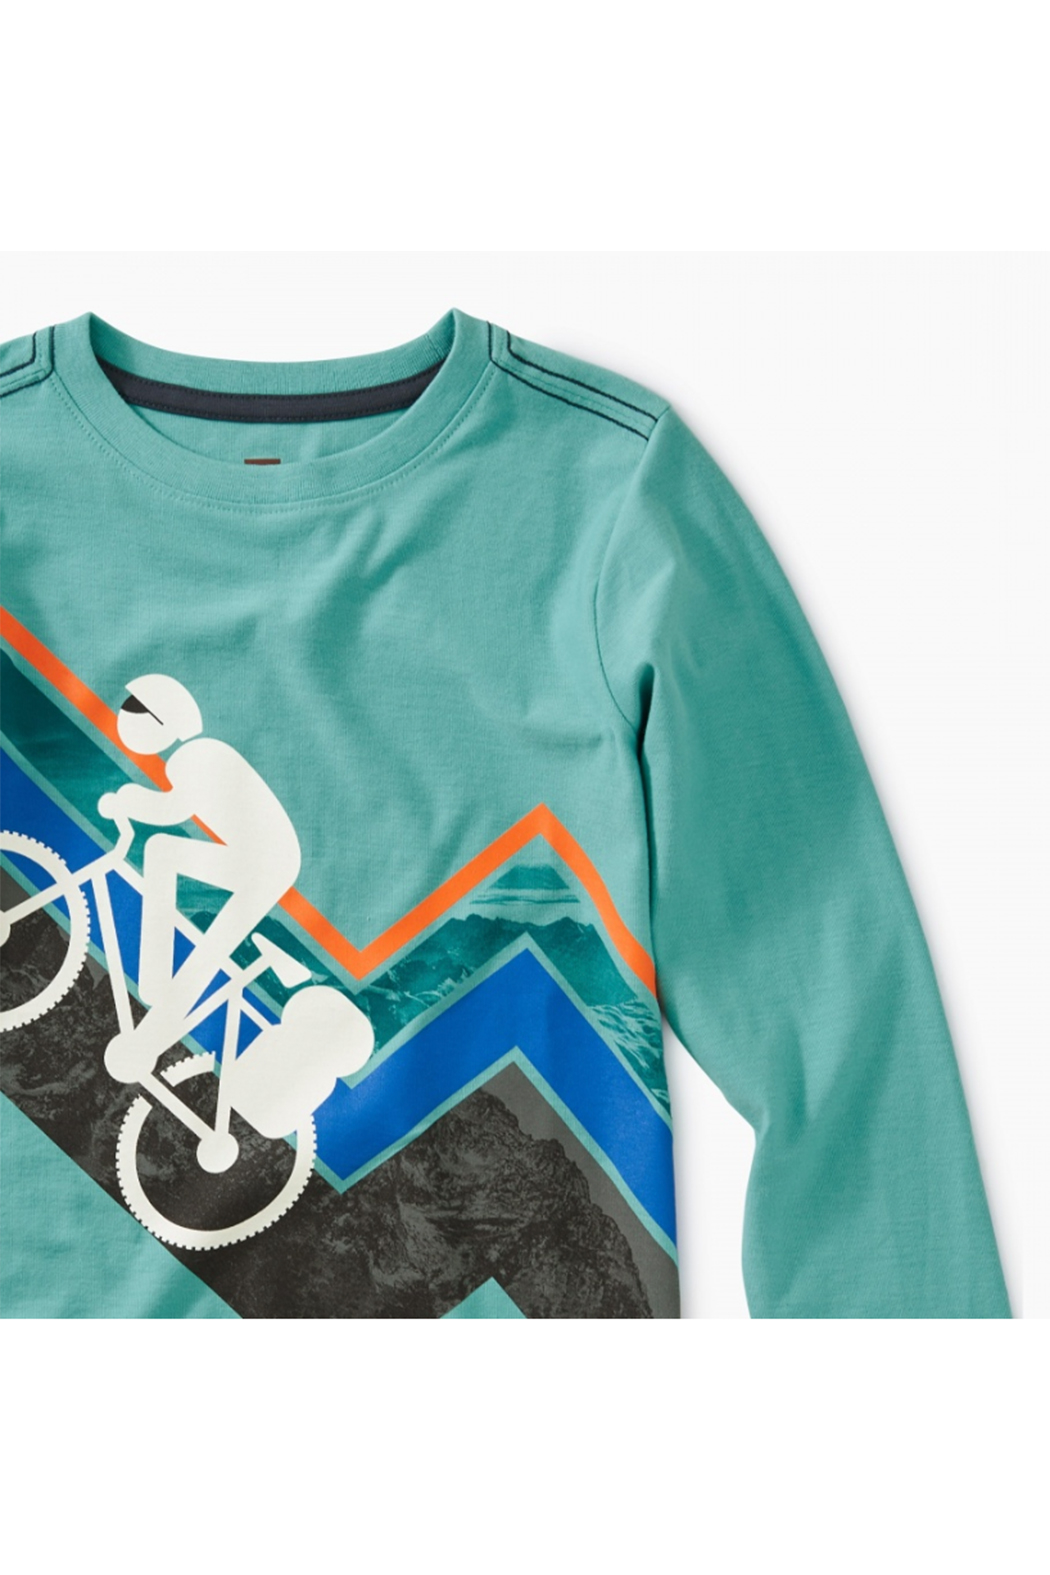 Tea Collection Mountain Biker Graphic Tee - Front Full Image